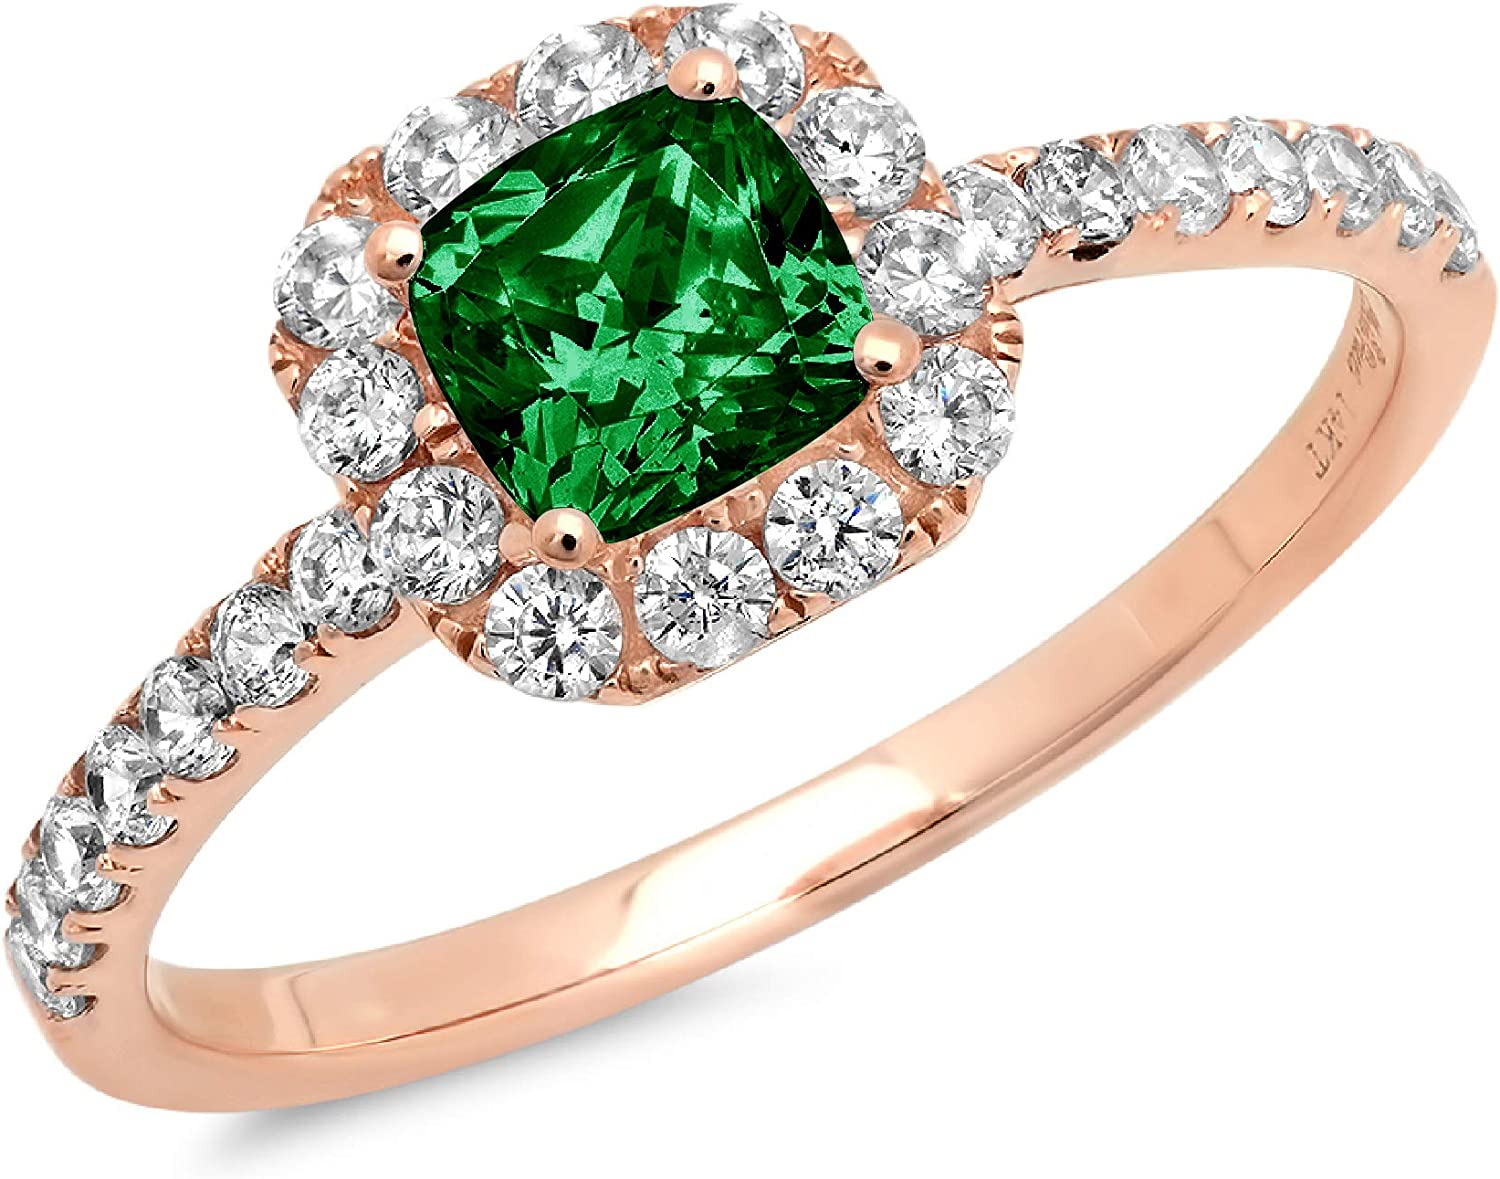 1.34ct Brilliant Princess Cut Solitaire with accent Flawless Ideal VVS1 Simulated CZ Green Emerald Engagement Promise Statement Anniversary Bridal Wedding Designer Ring 14k Rose Gold